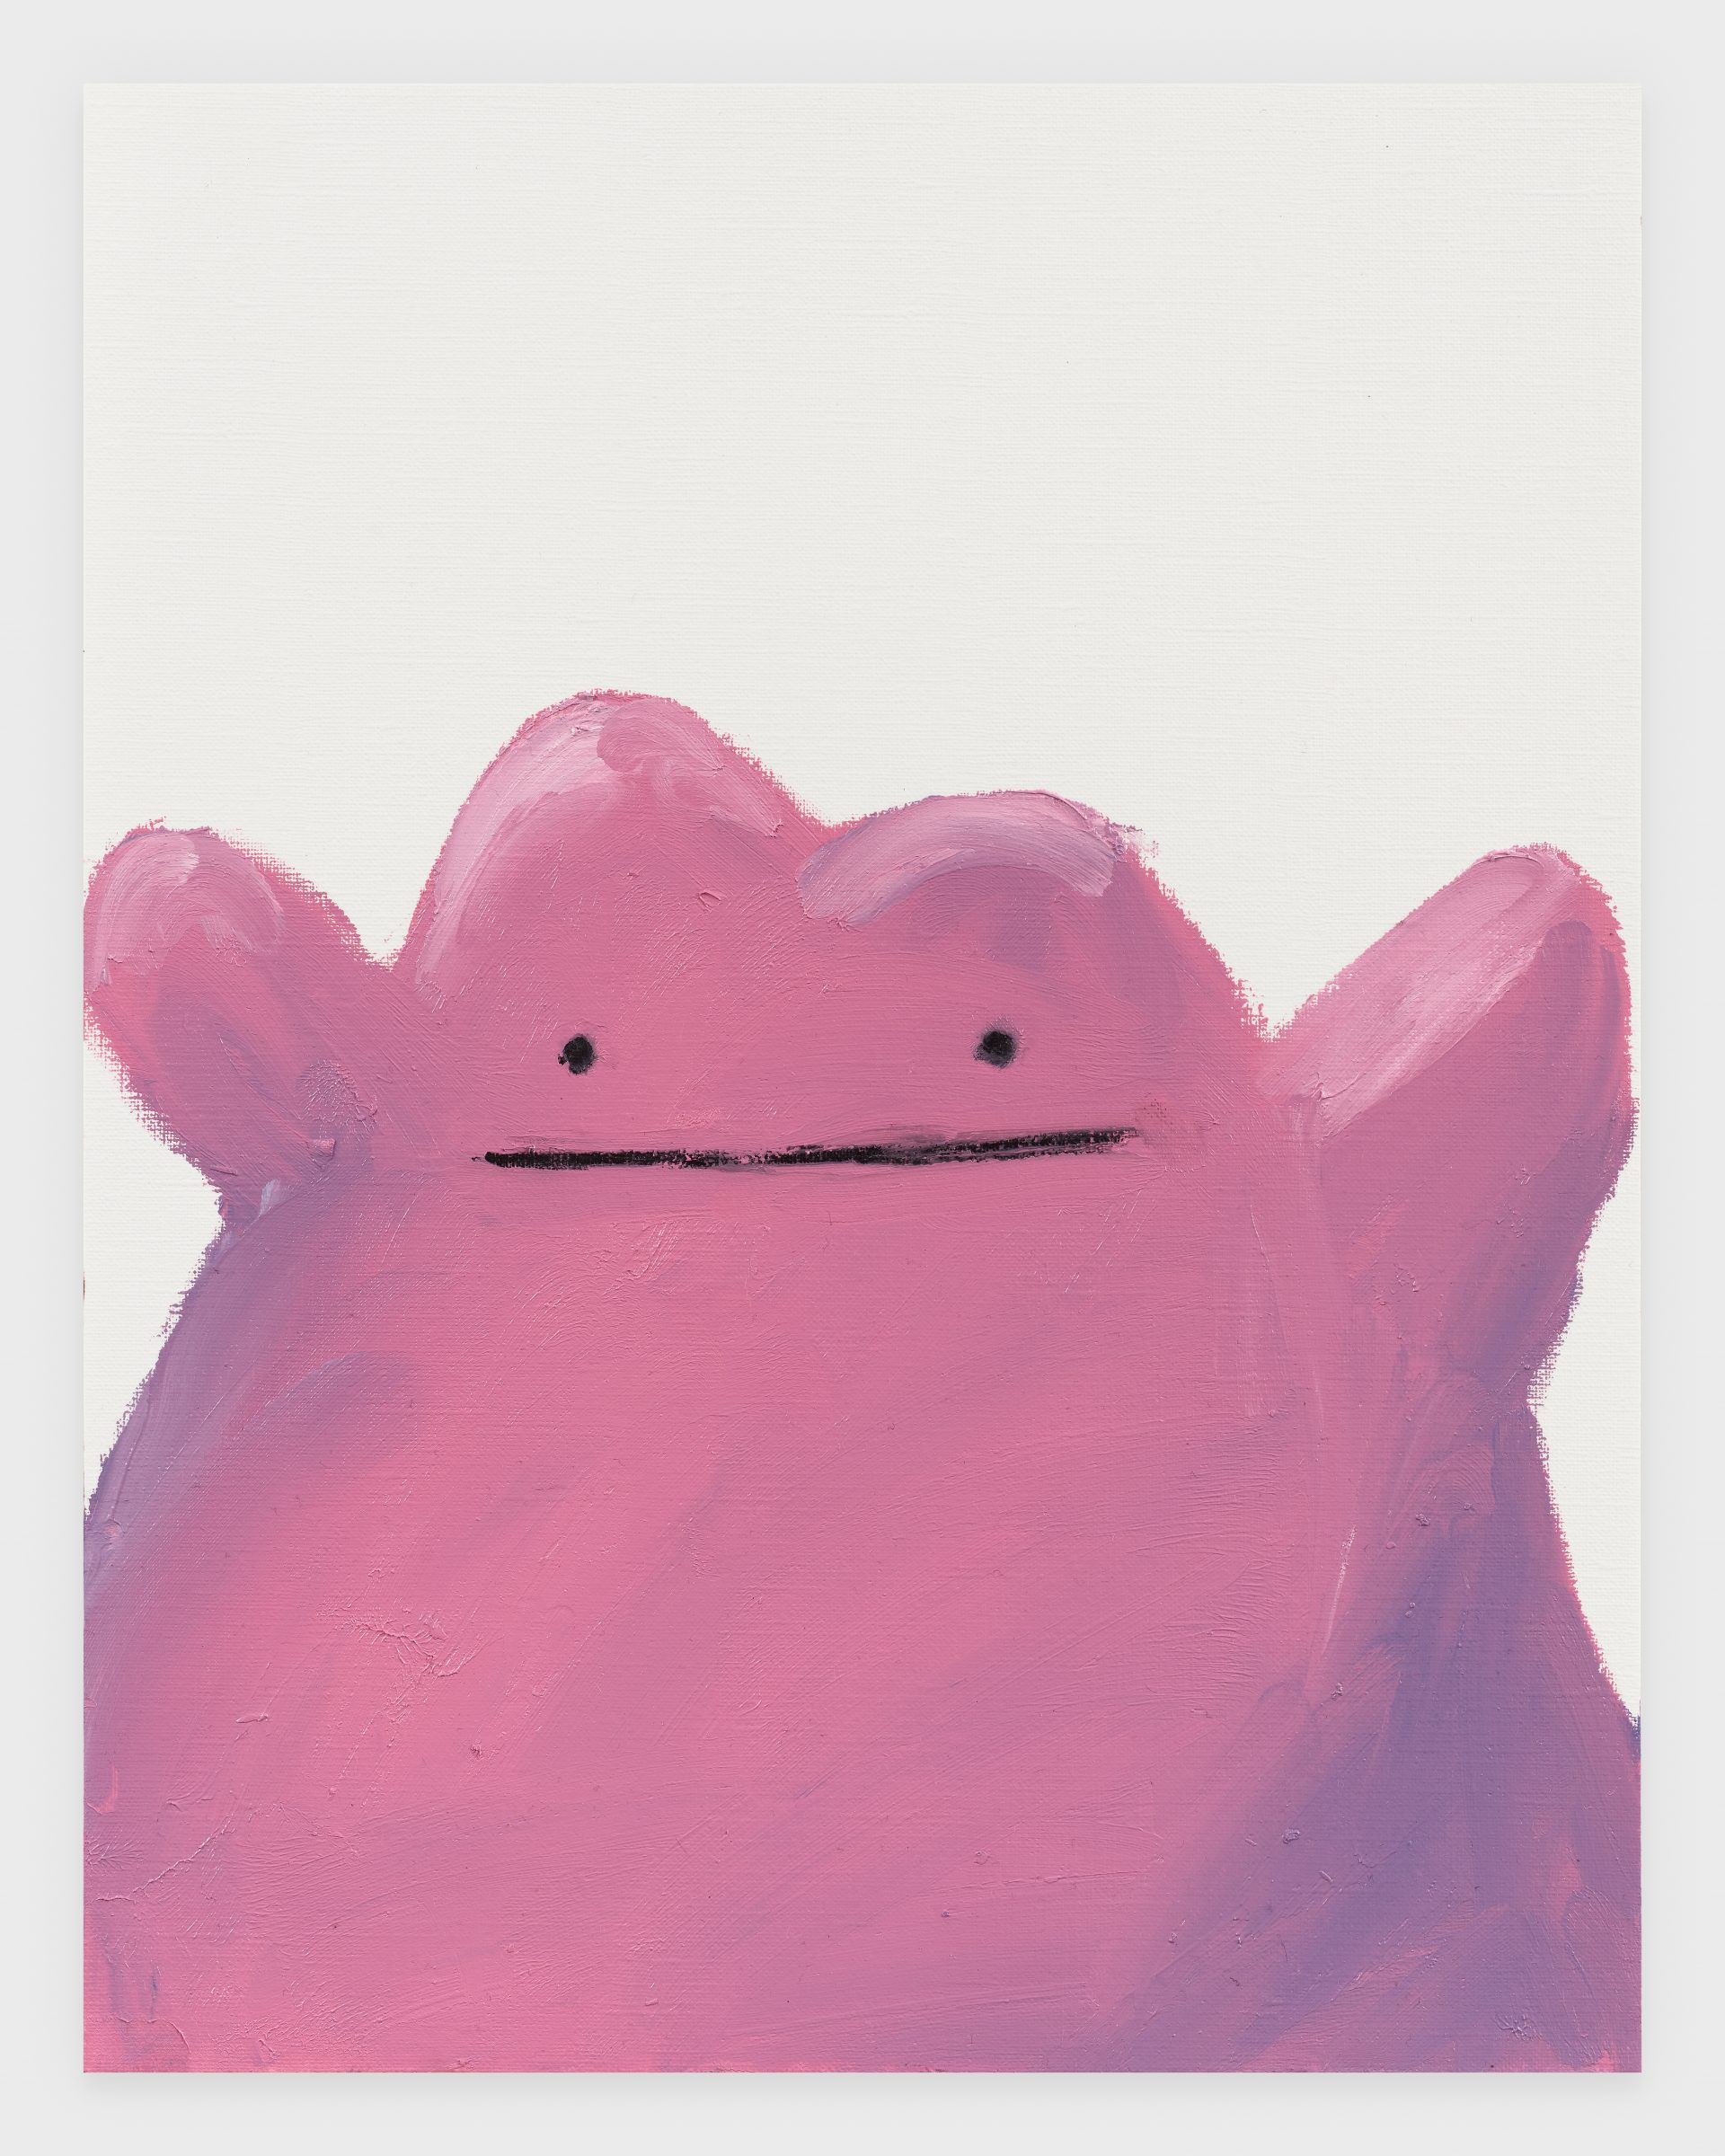 Ditto, 2020, Oil stick on archival paper, 11 x 14 inches